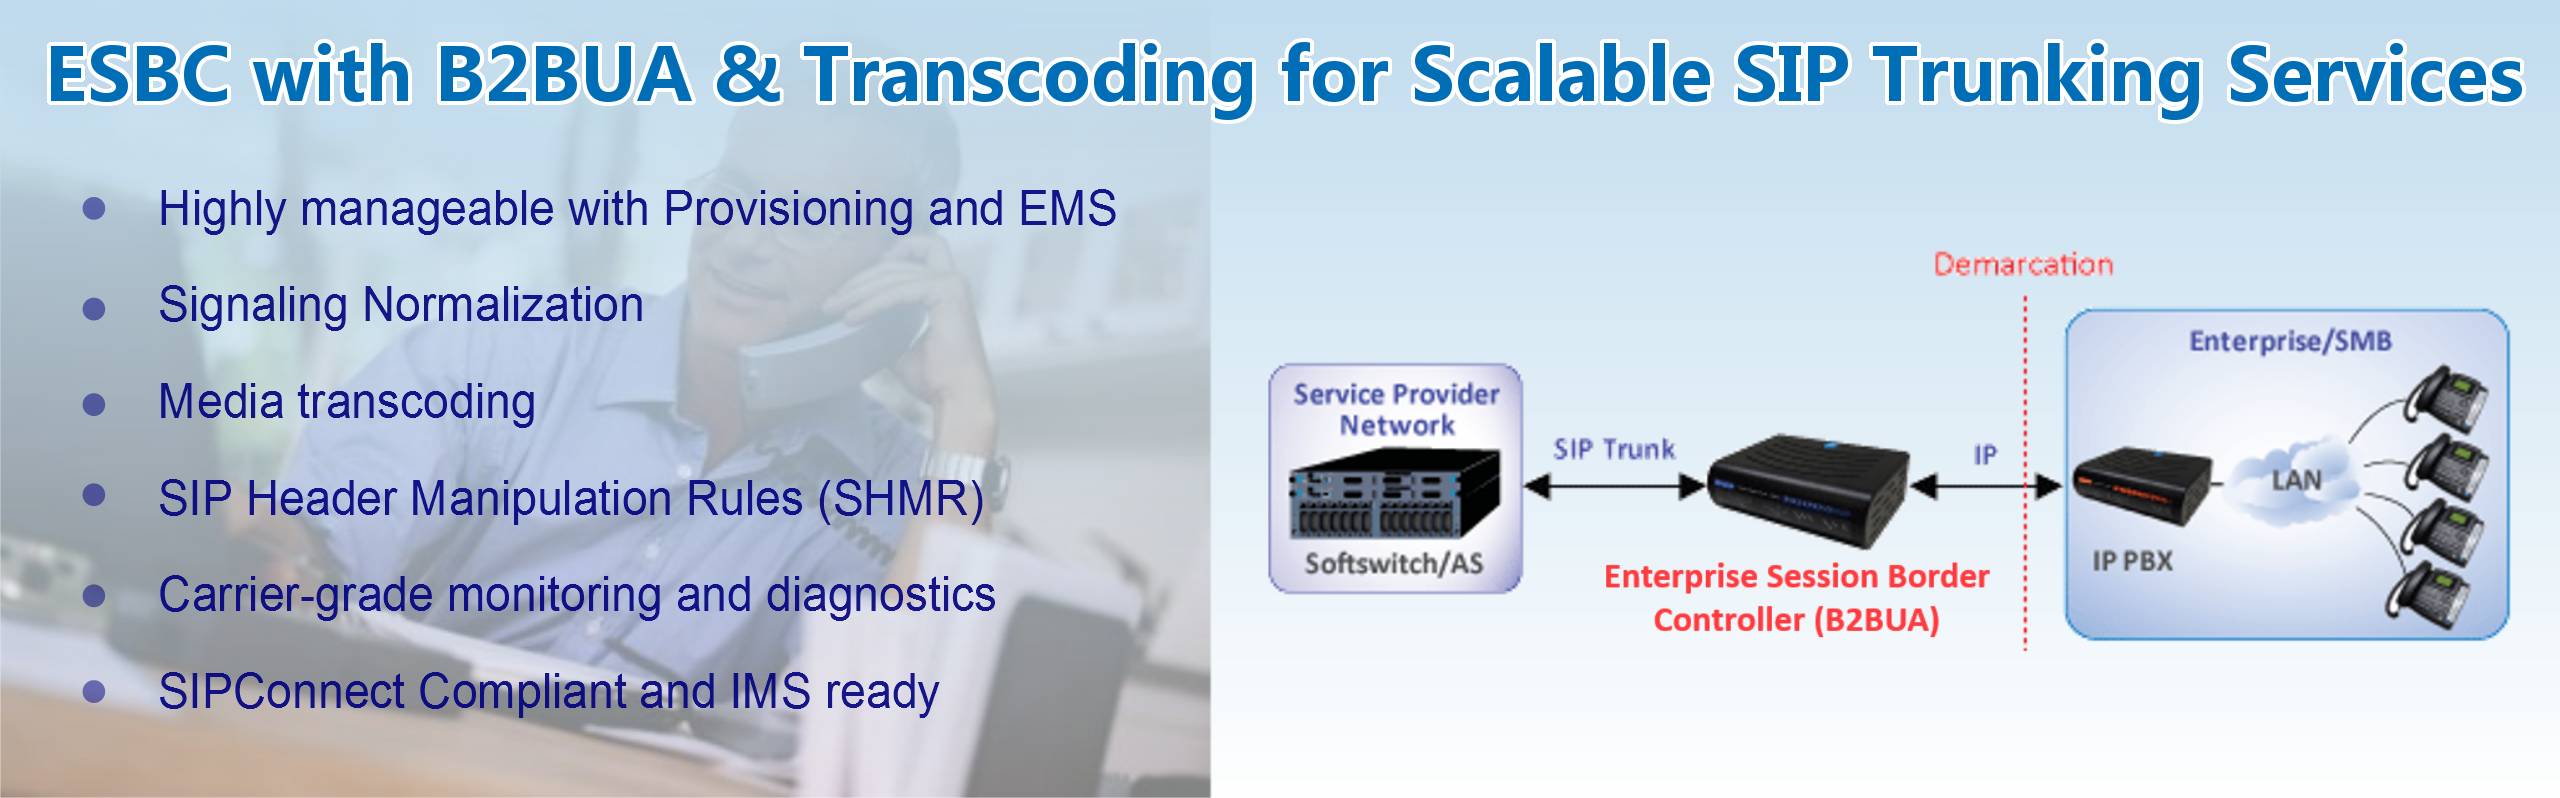 ESBC with B2BUA & Transcoding for Scalable SIP Trunking Services